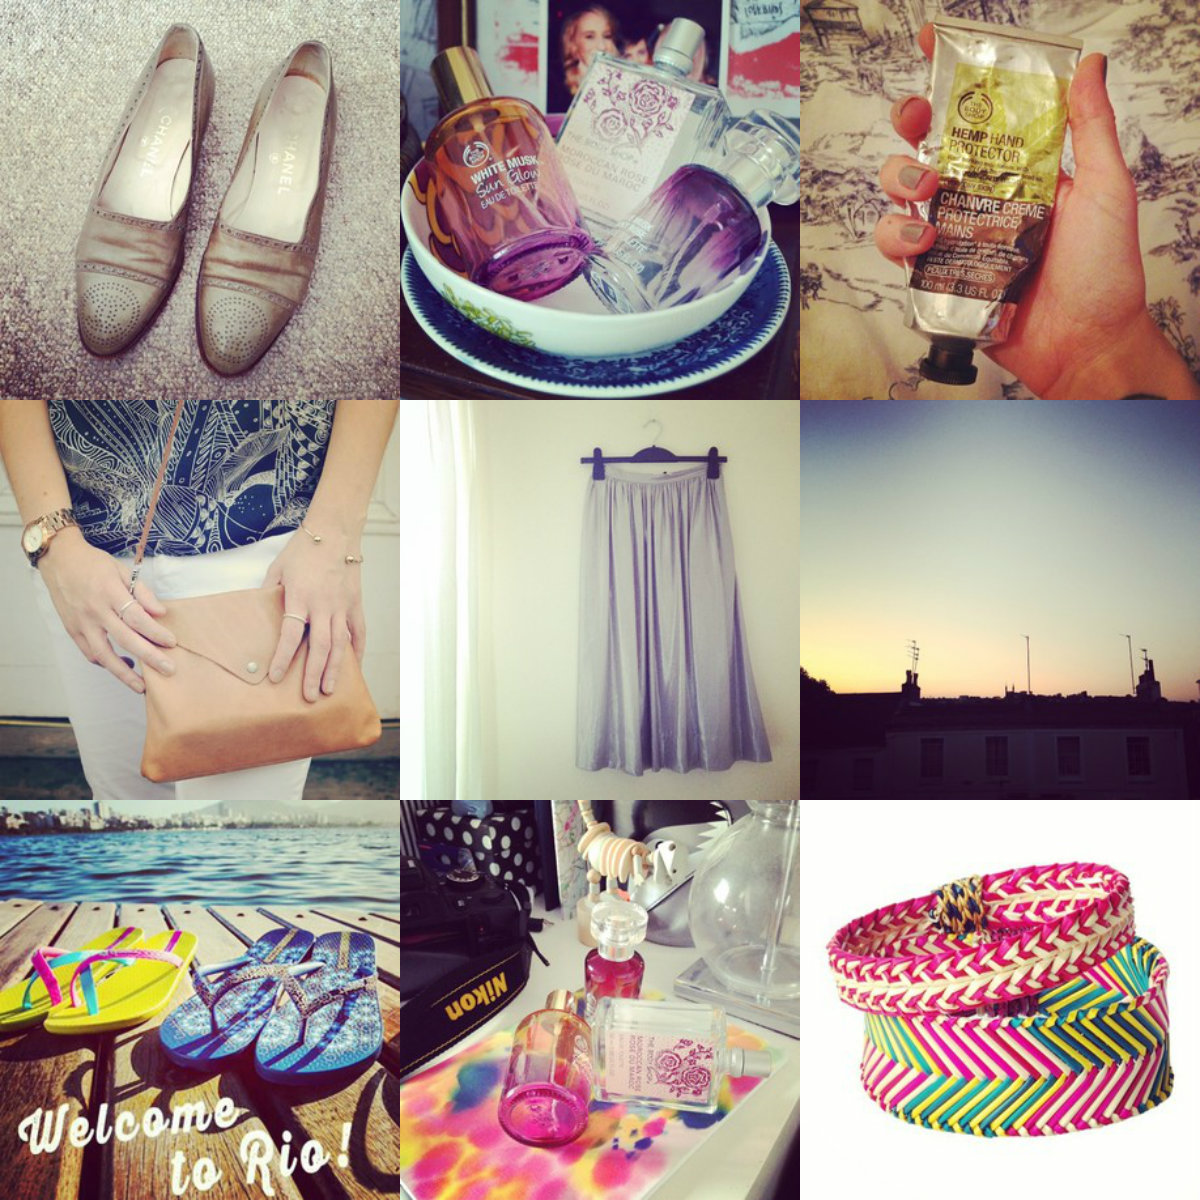 instagram, ipanema giveaway, body shop, perfume, toast, bangles, chanel  vintage shoes